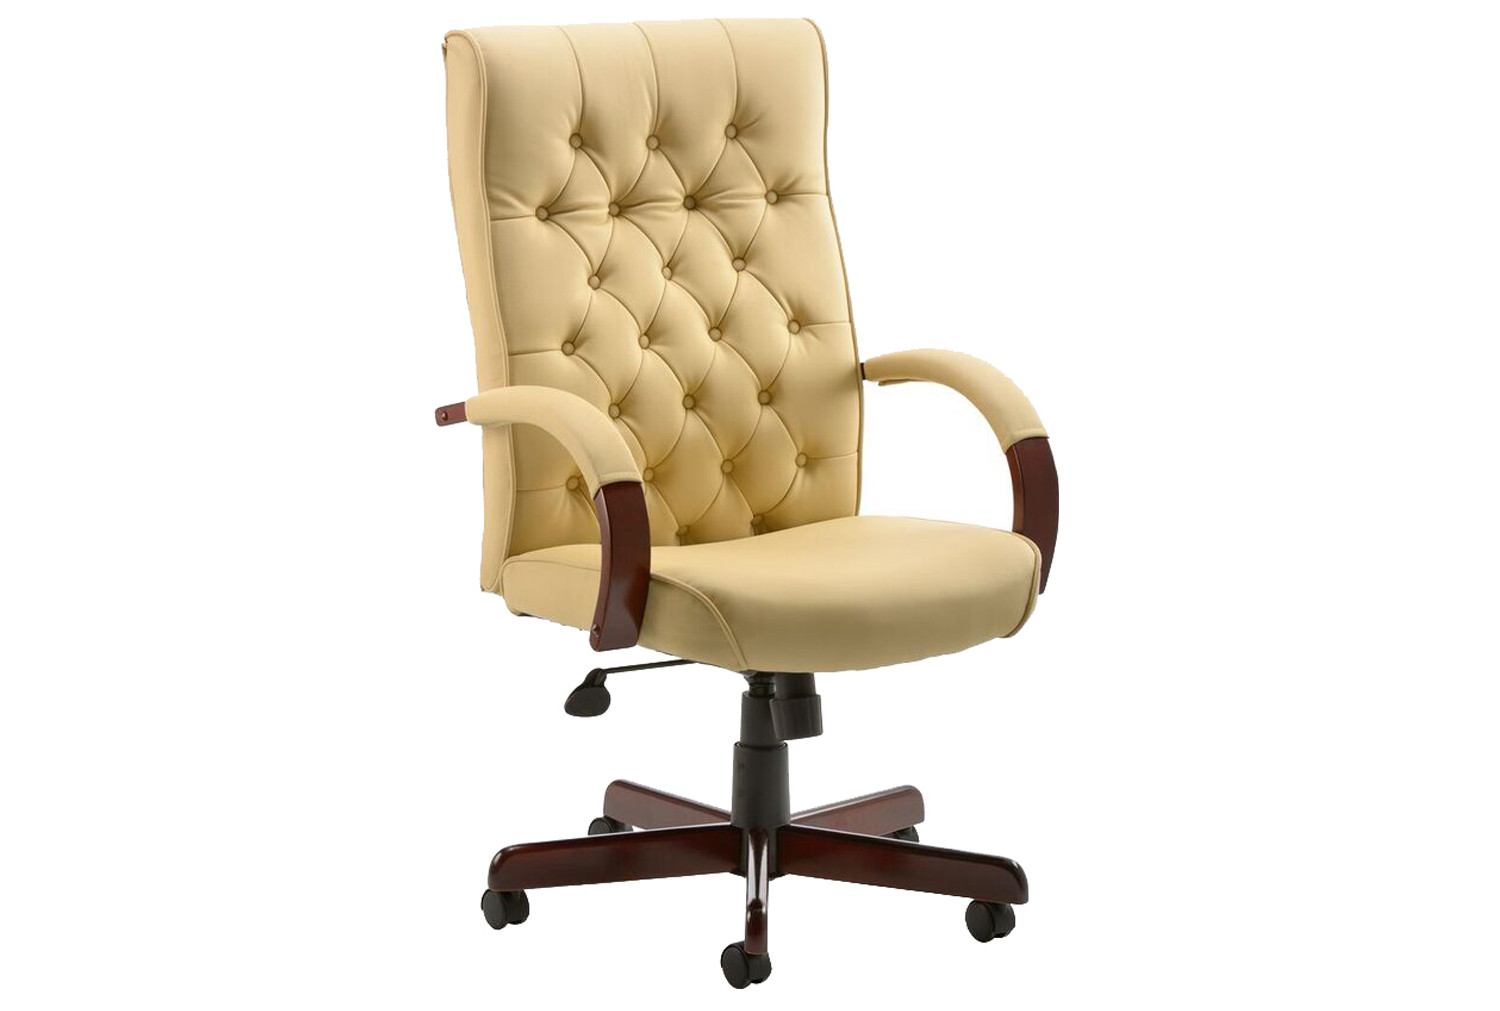 Tronso Traditional Leather Armchair Cream - Furniture At Work®